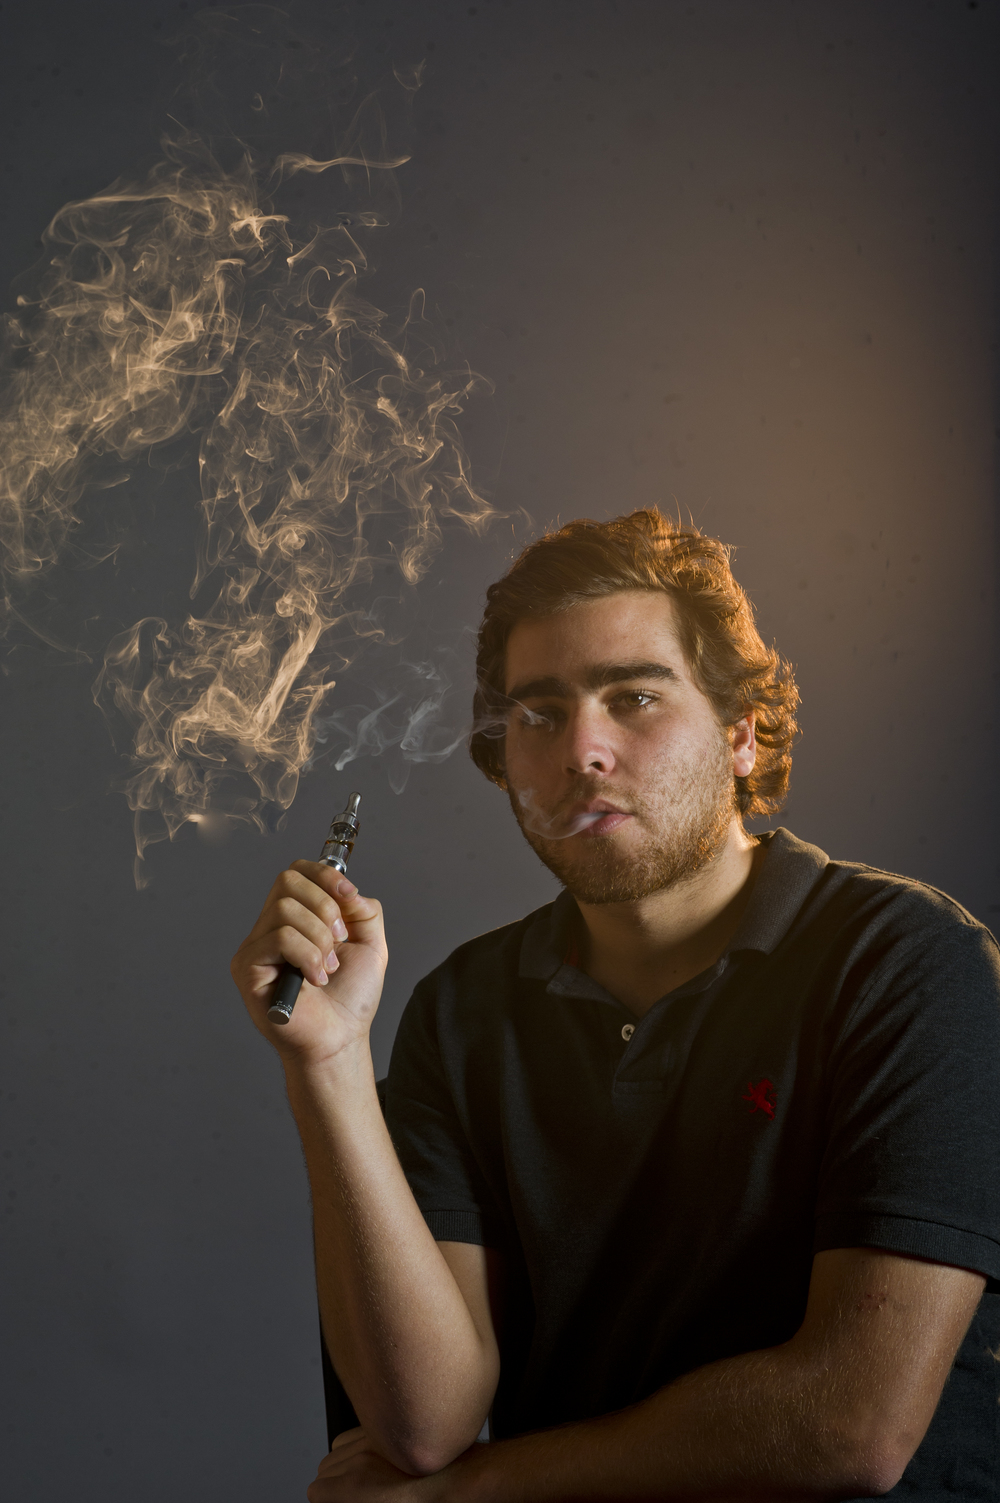 For a story about vaping. Photo by Cydney Scott for Boston University Photography